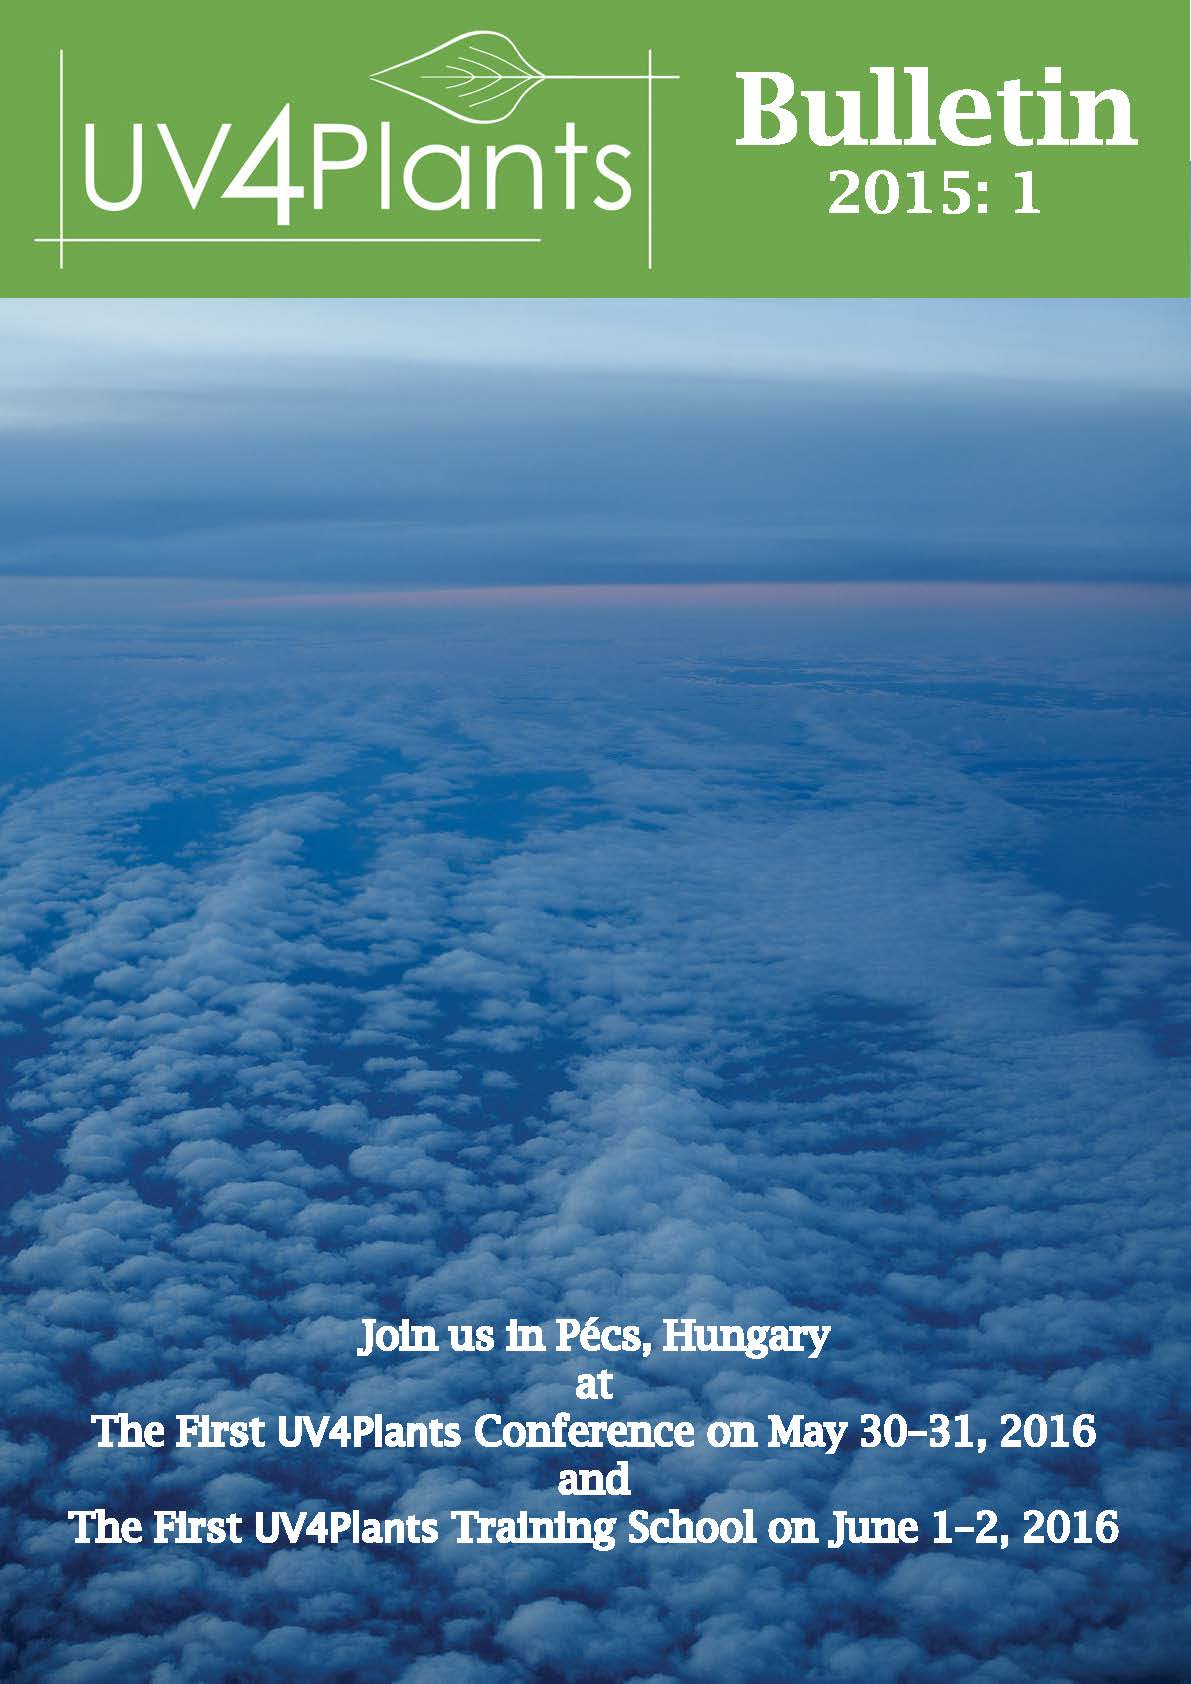 Cover of the UV4Plants Bulletin 2015:1